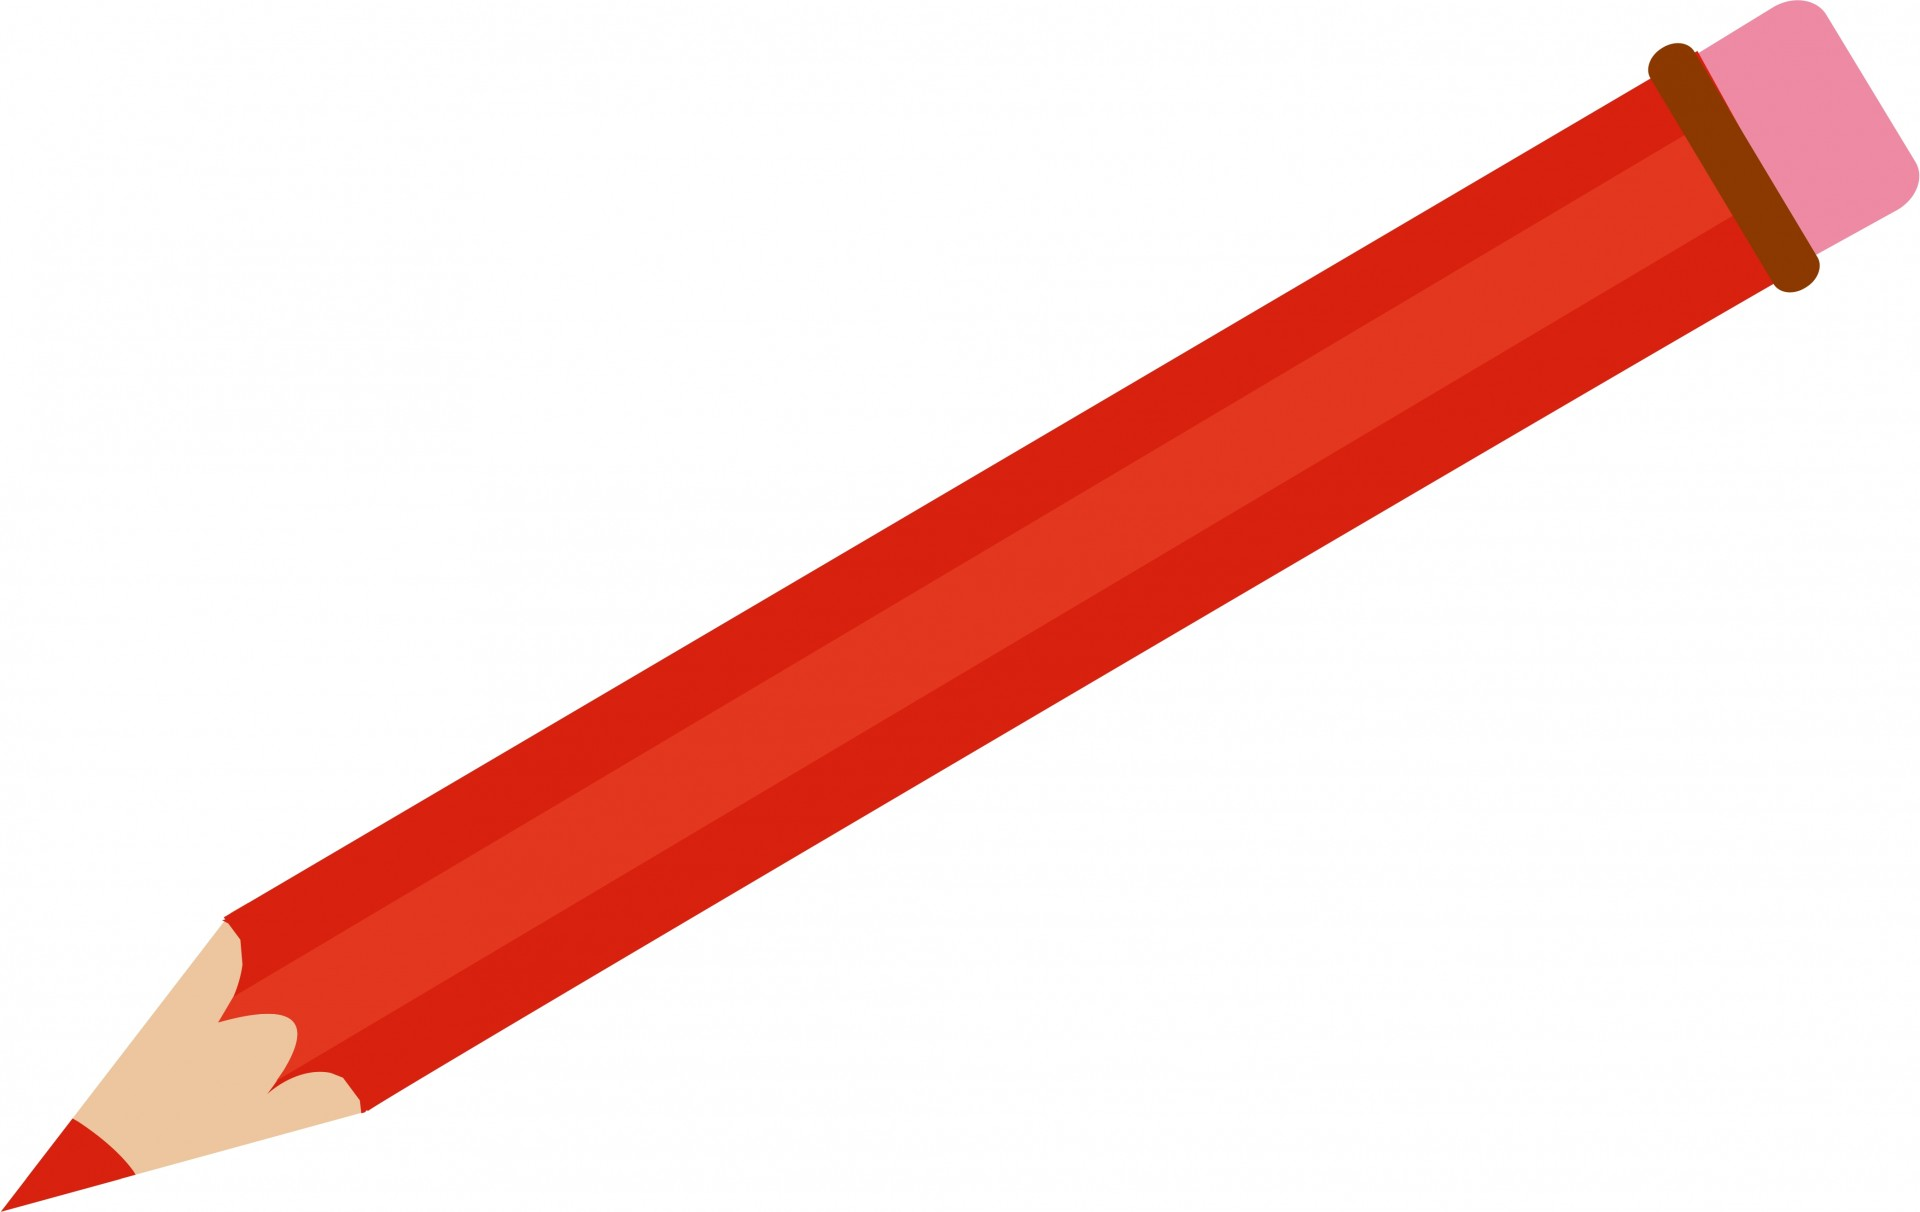 1920x1212 Red Pencil Clipart Free Stock Photo